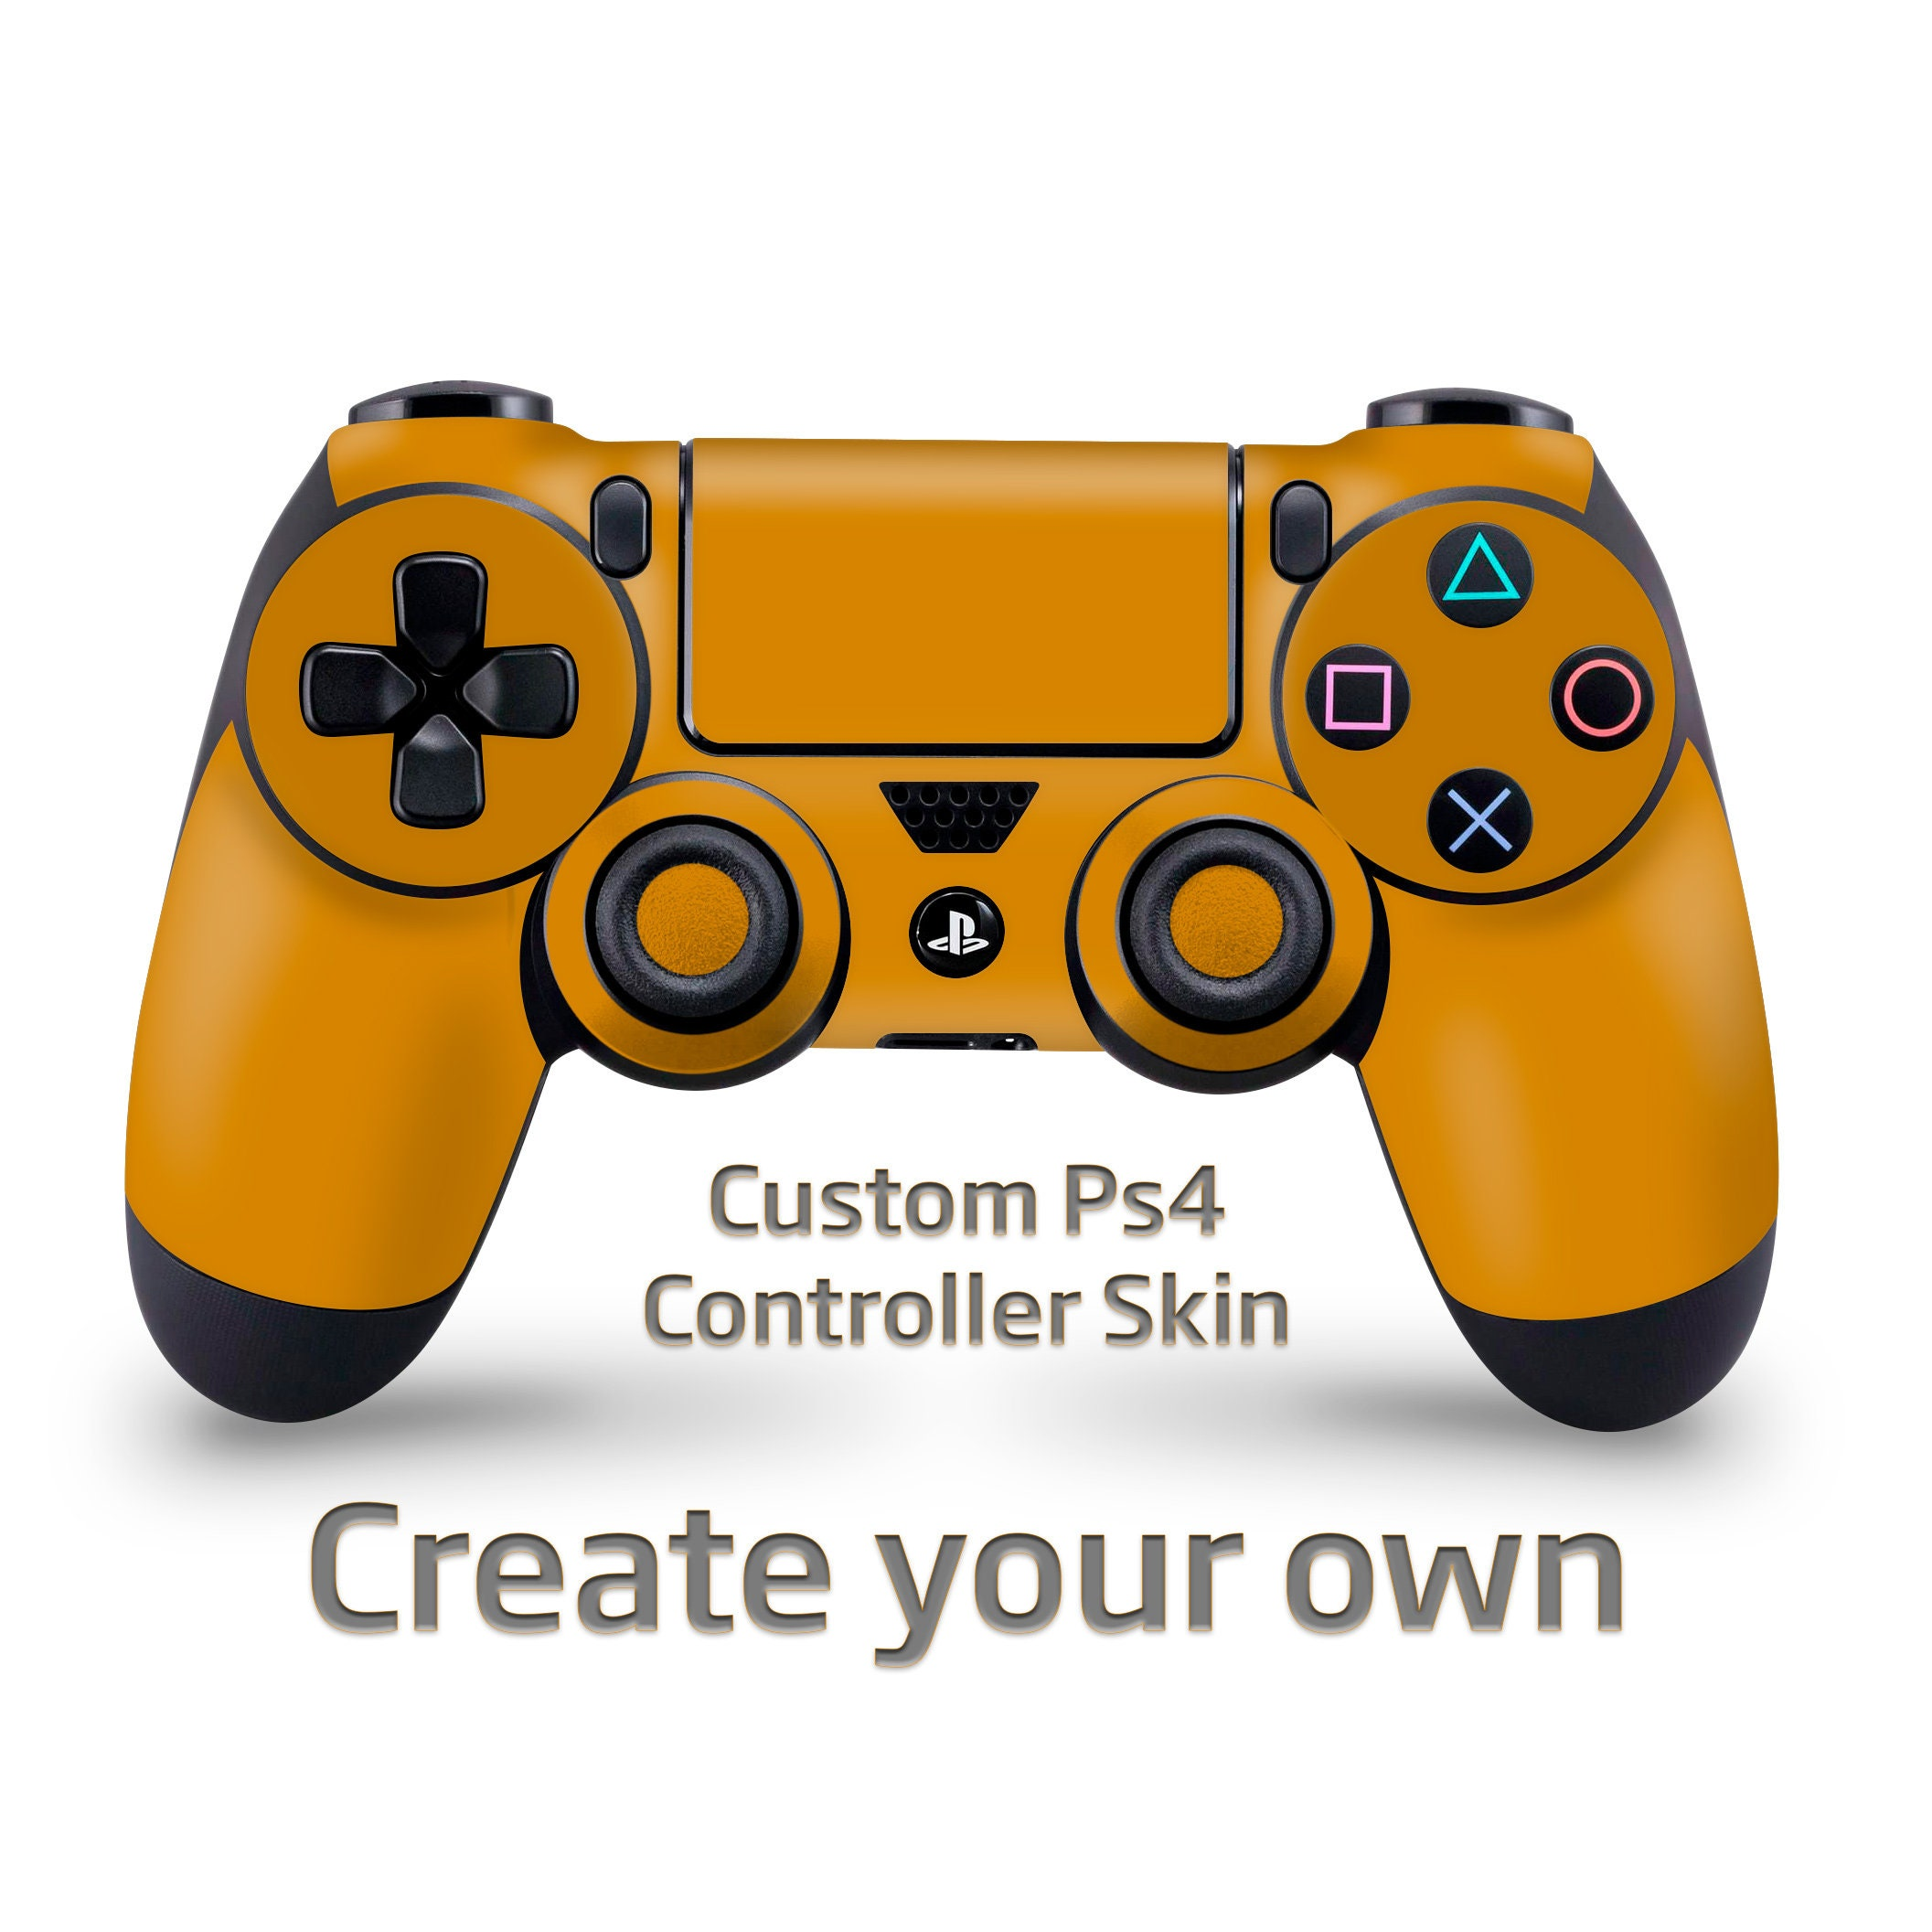 Create Your Own Ps4 Controller Skin Custom PS4 Skin